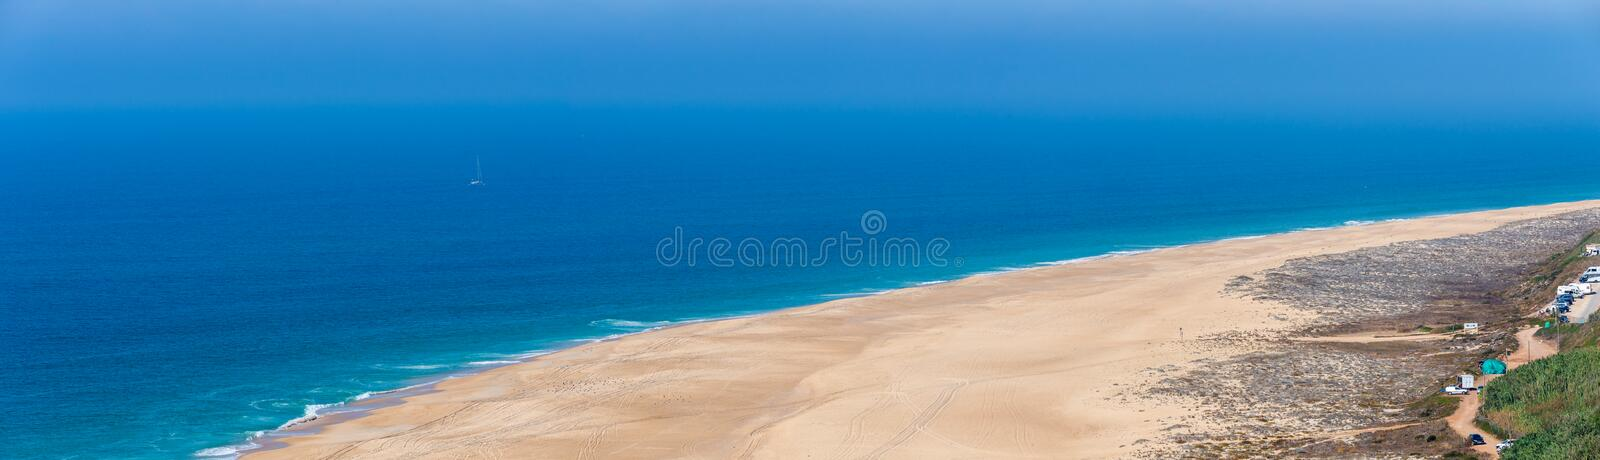 Scenic view of surf beach and ocean near Nazare Portugal stock photo